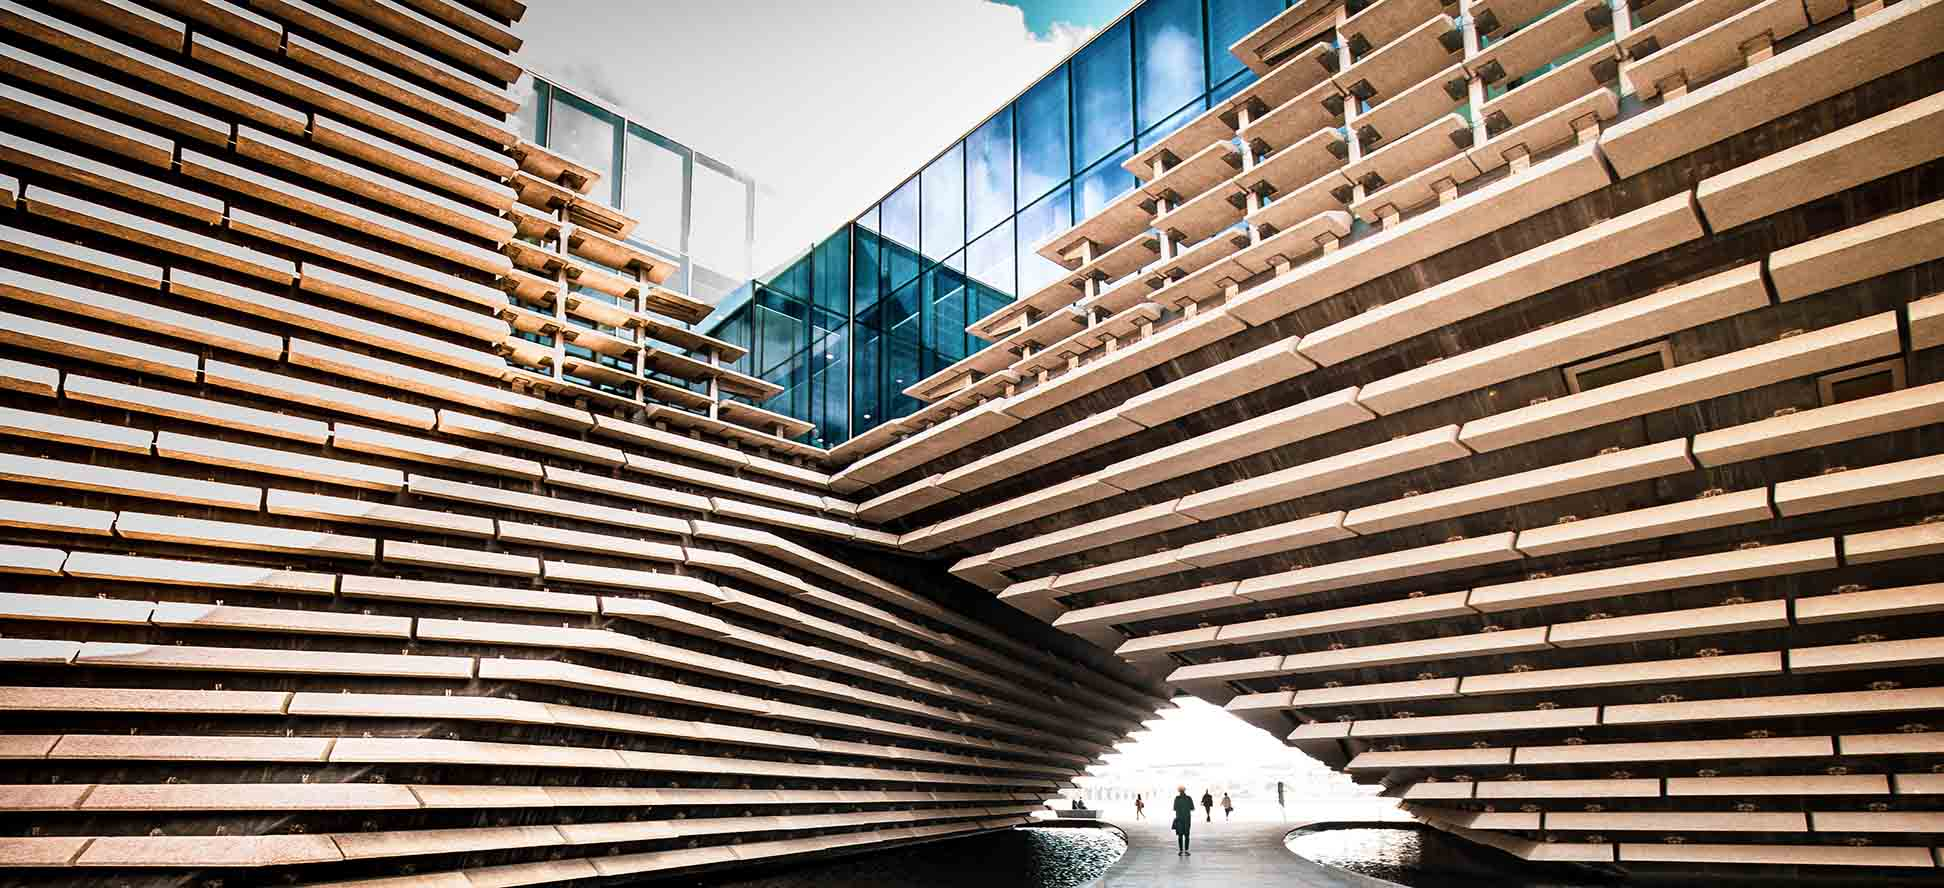 Architectural design of V&A Museum Dundee photograph by James Thompson